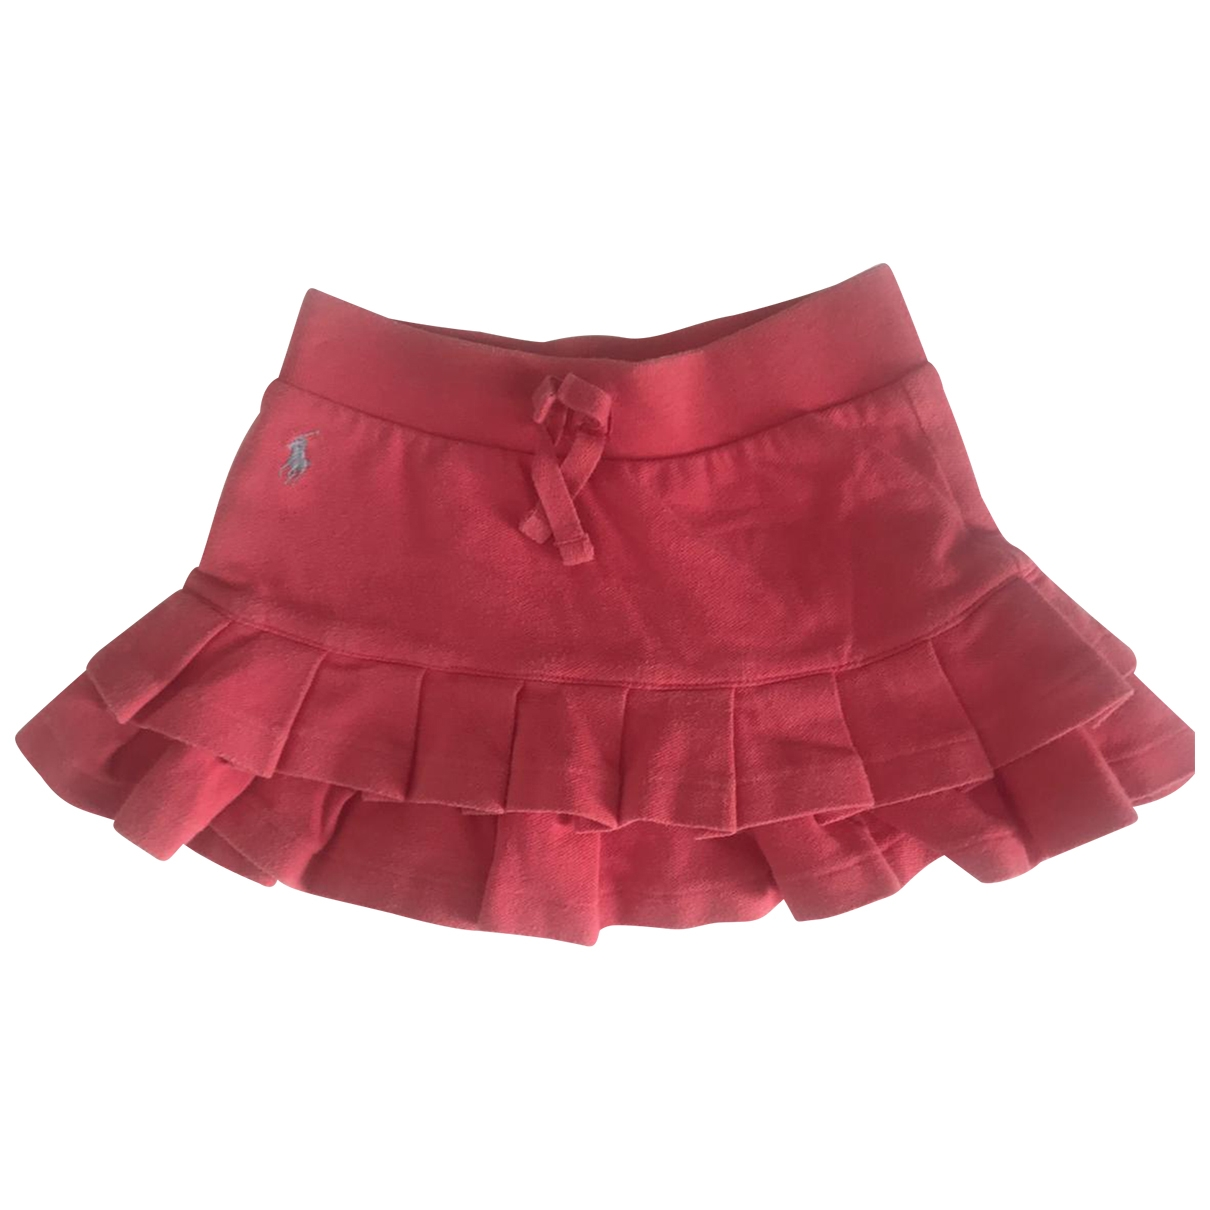 Ralph Lauren \N Pink Cotton skirt for Kids 2 years - up to 86cm FR